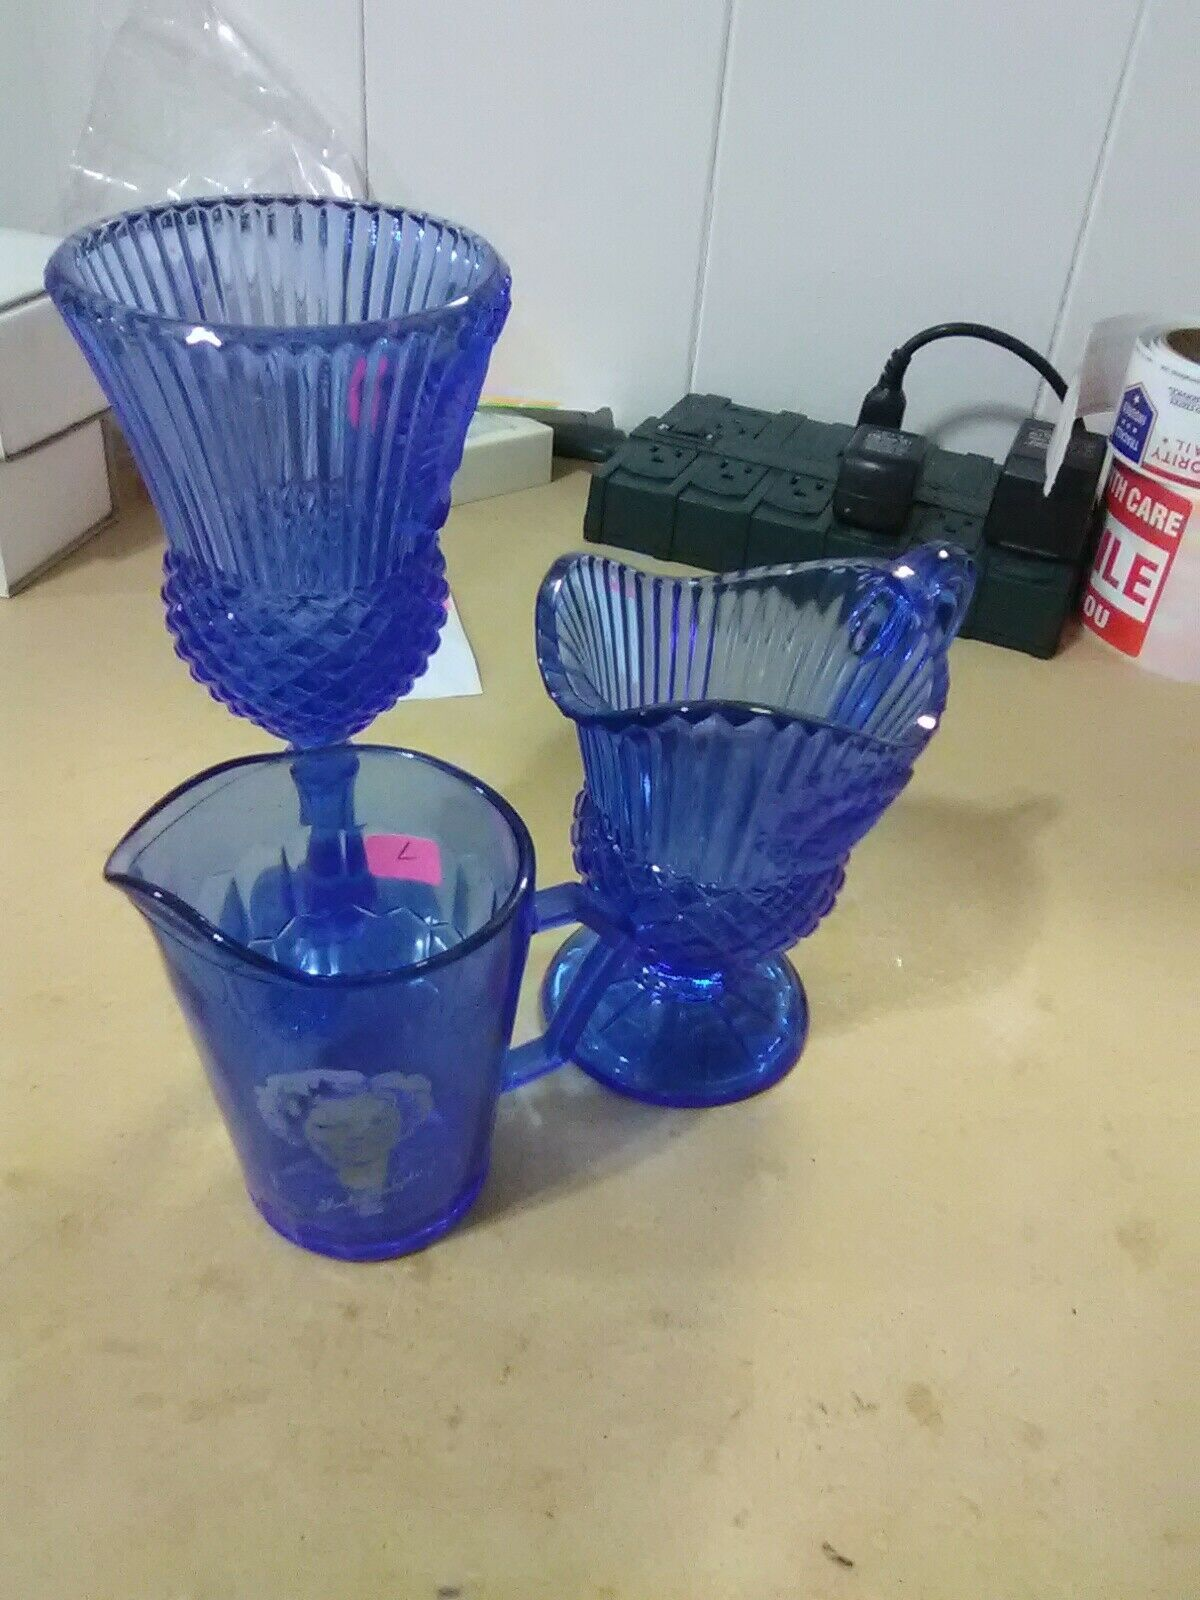 Primary image for 3 Pieces of Cobalt Blue Glass - 2 Avon Containers and One Shirley Temple Pitcher